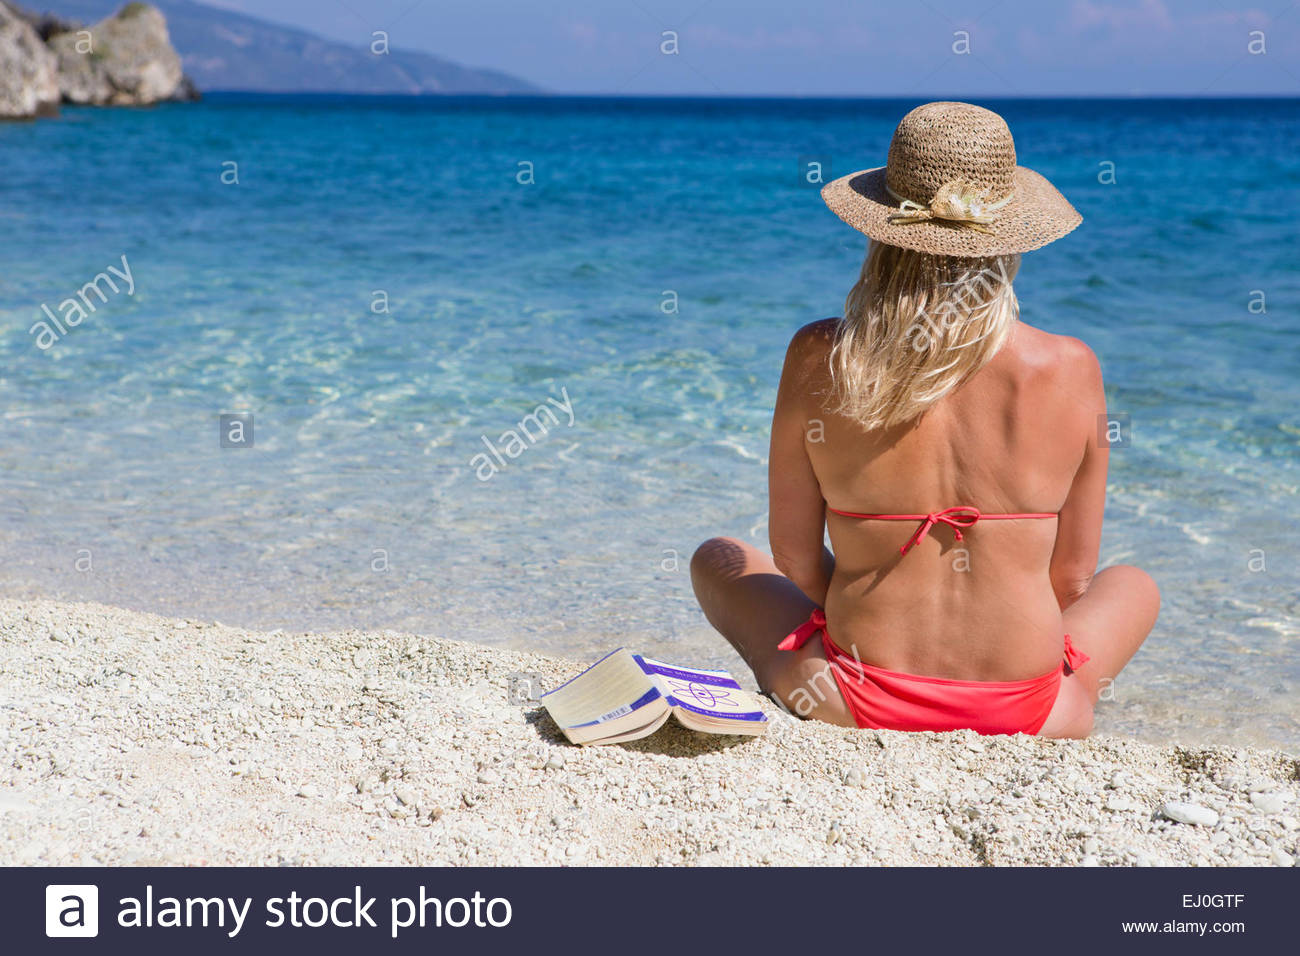 woman, looking out to sea, sitting on sunny beach - Stock Image